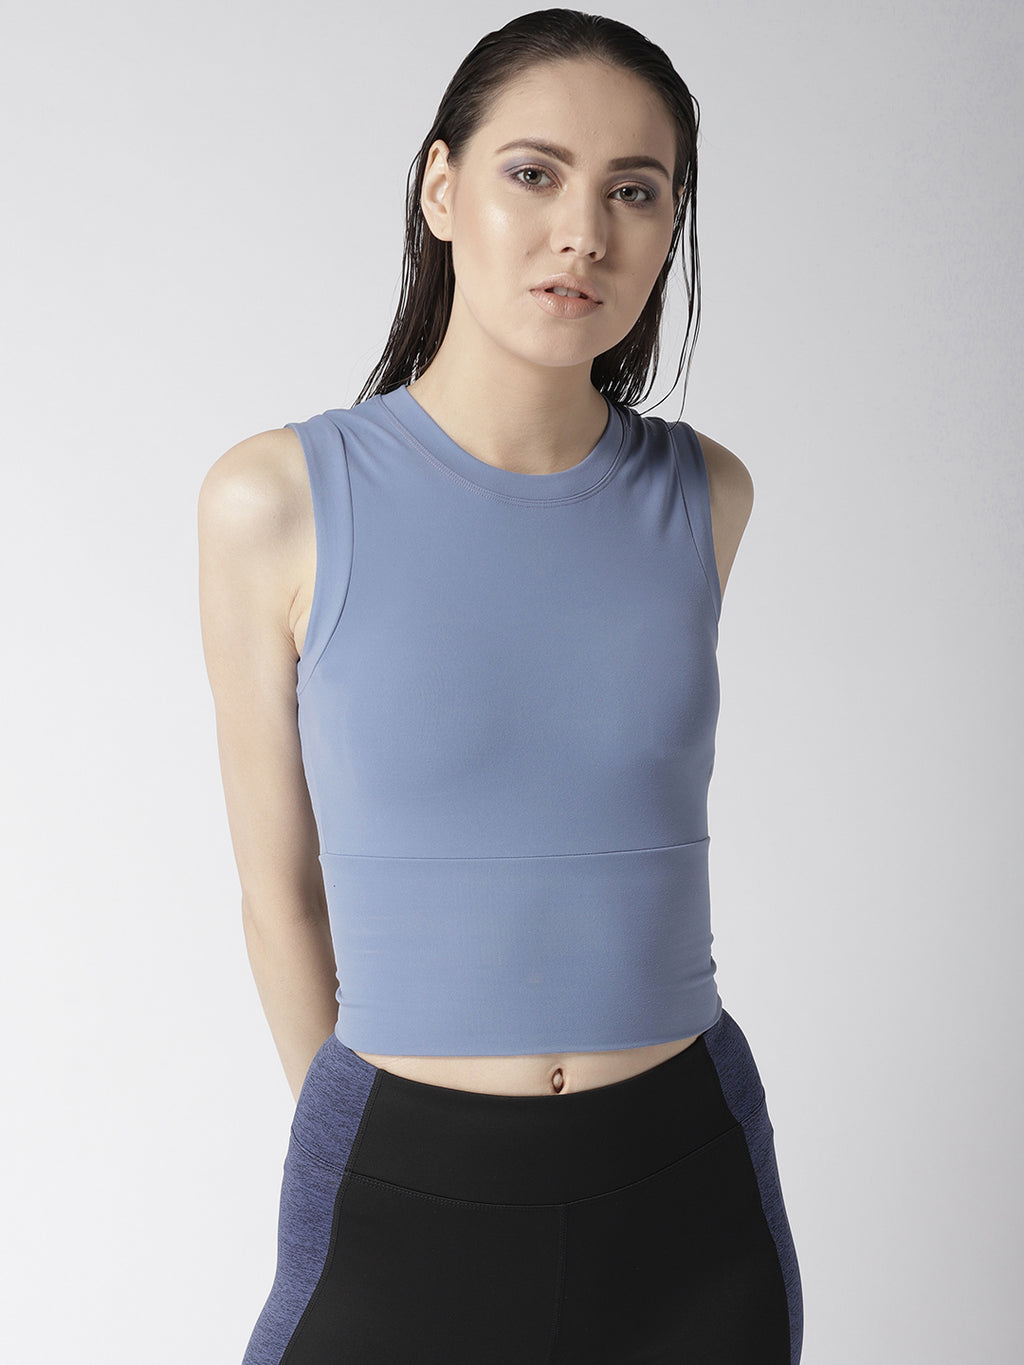 Fitkin Blue Training Crop GymTop